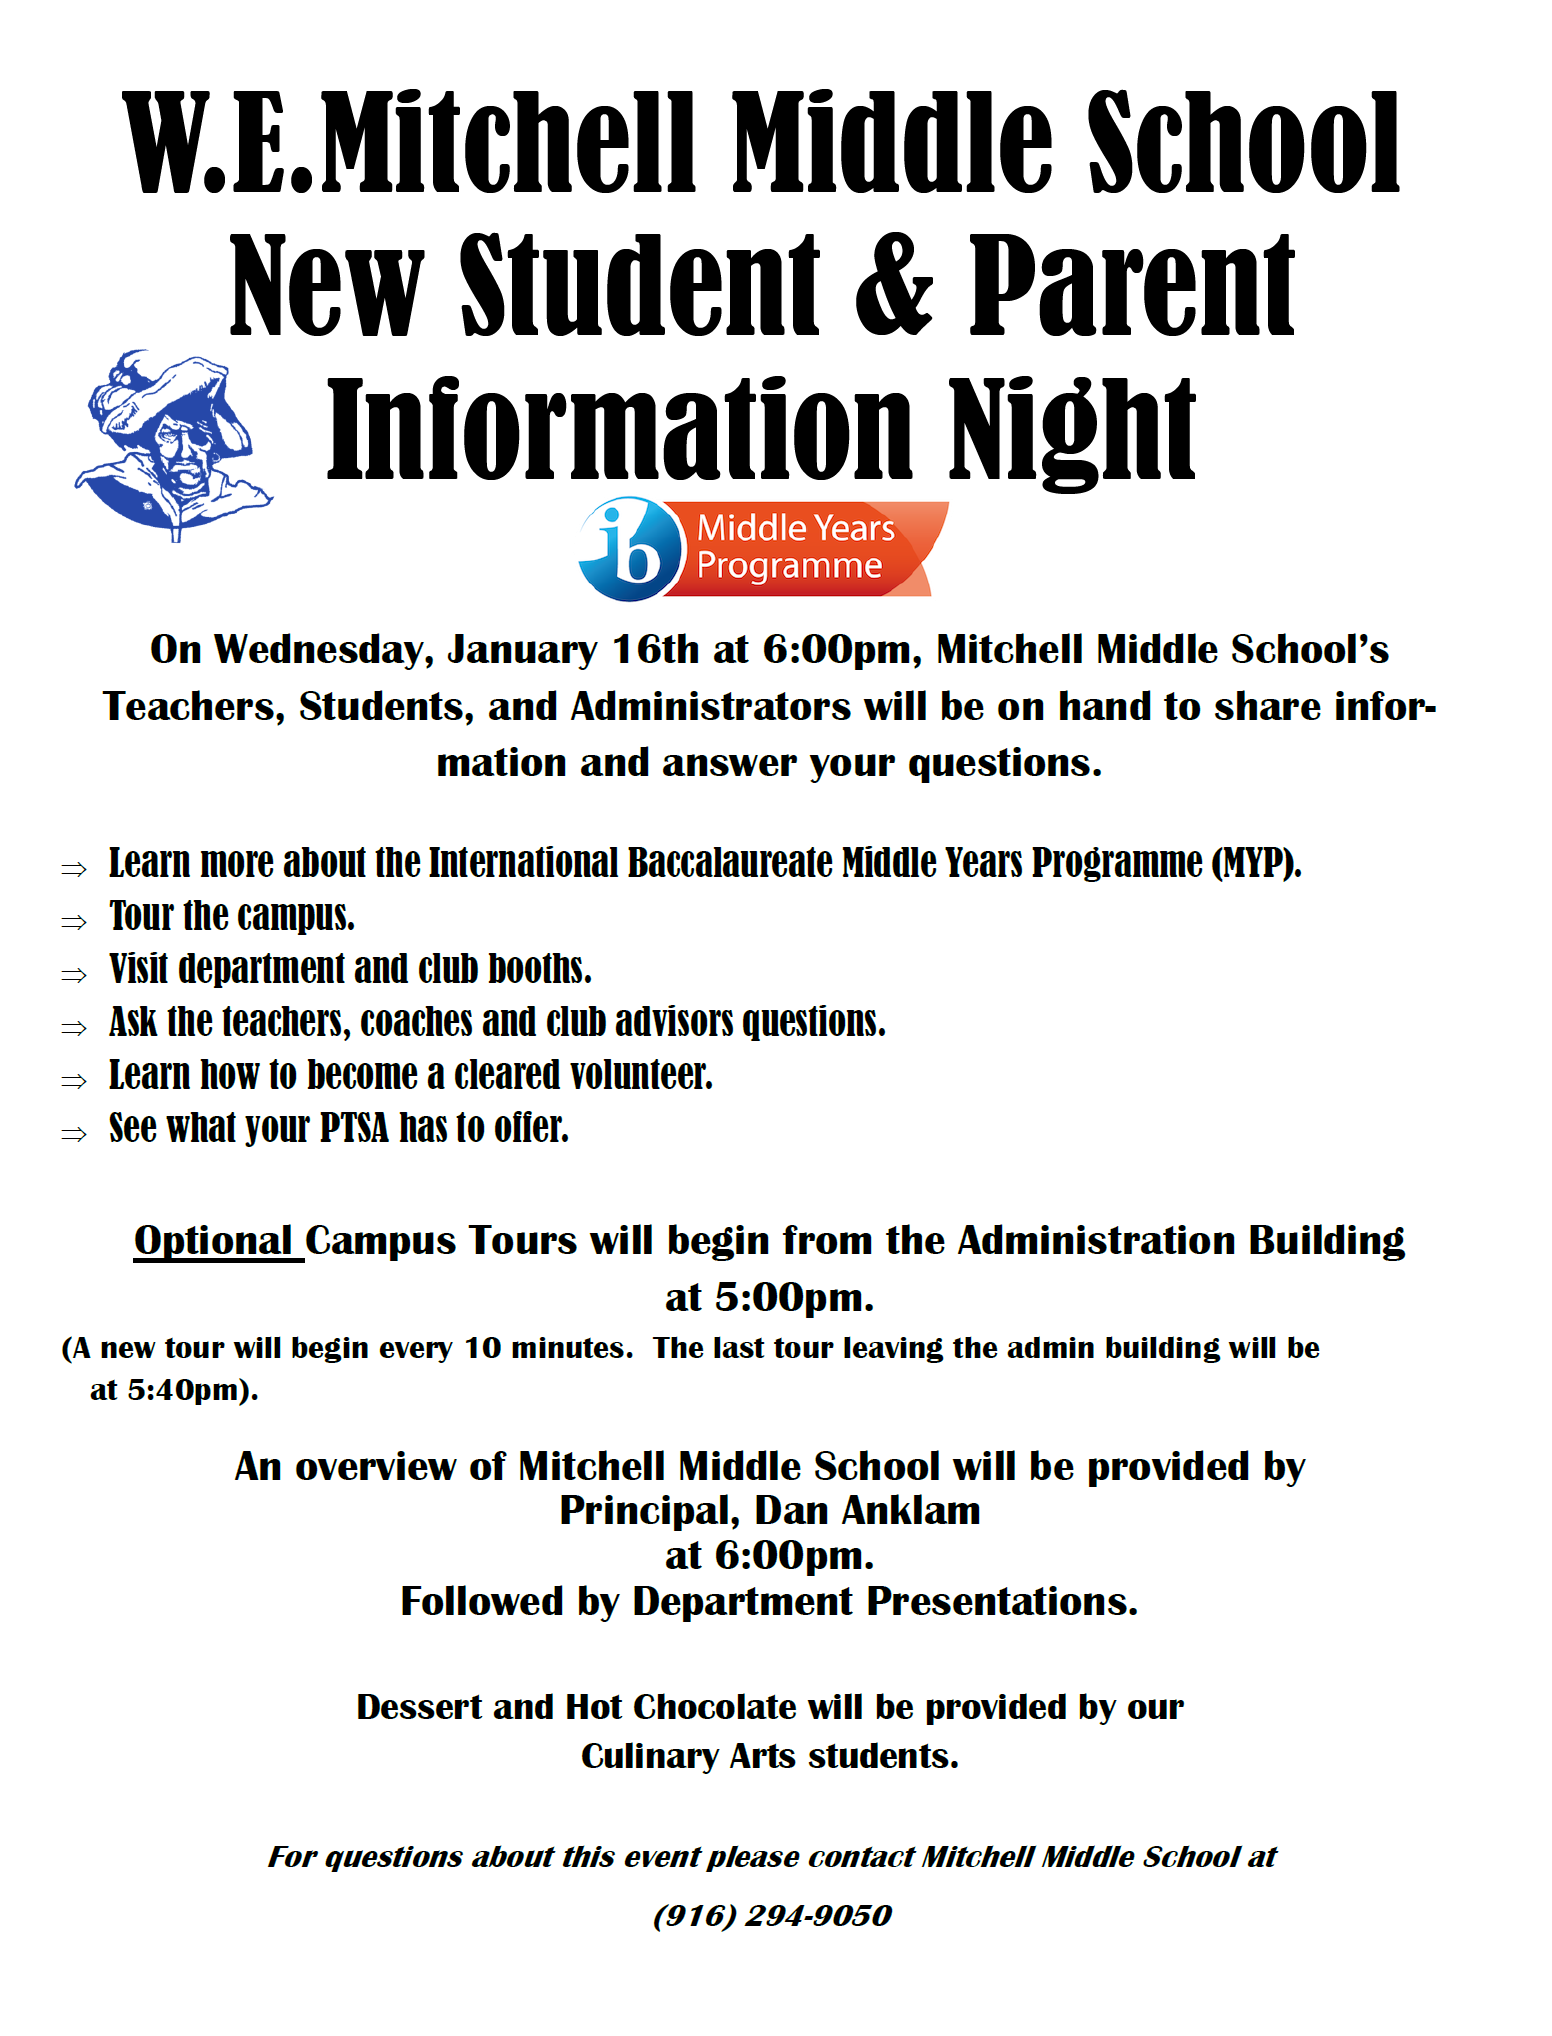 NEW TO MITCHELL INFORMATION NIGHT